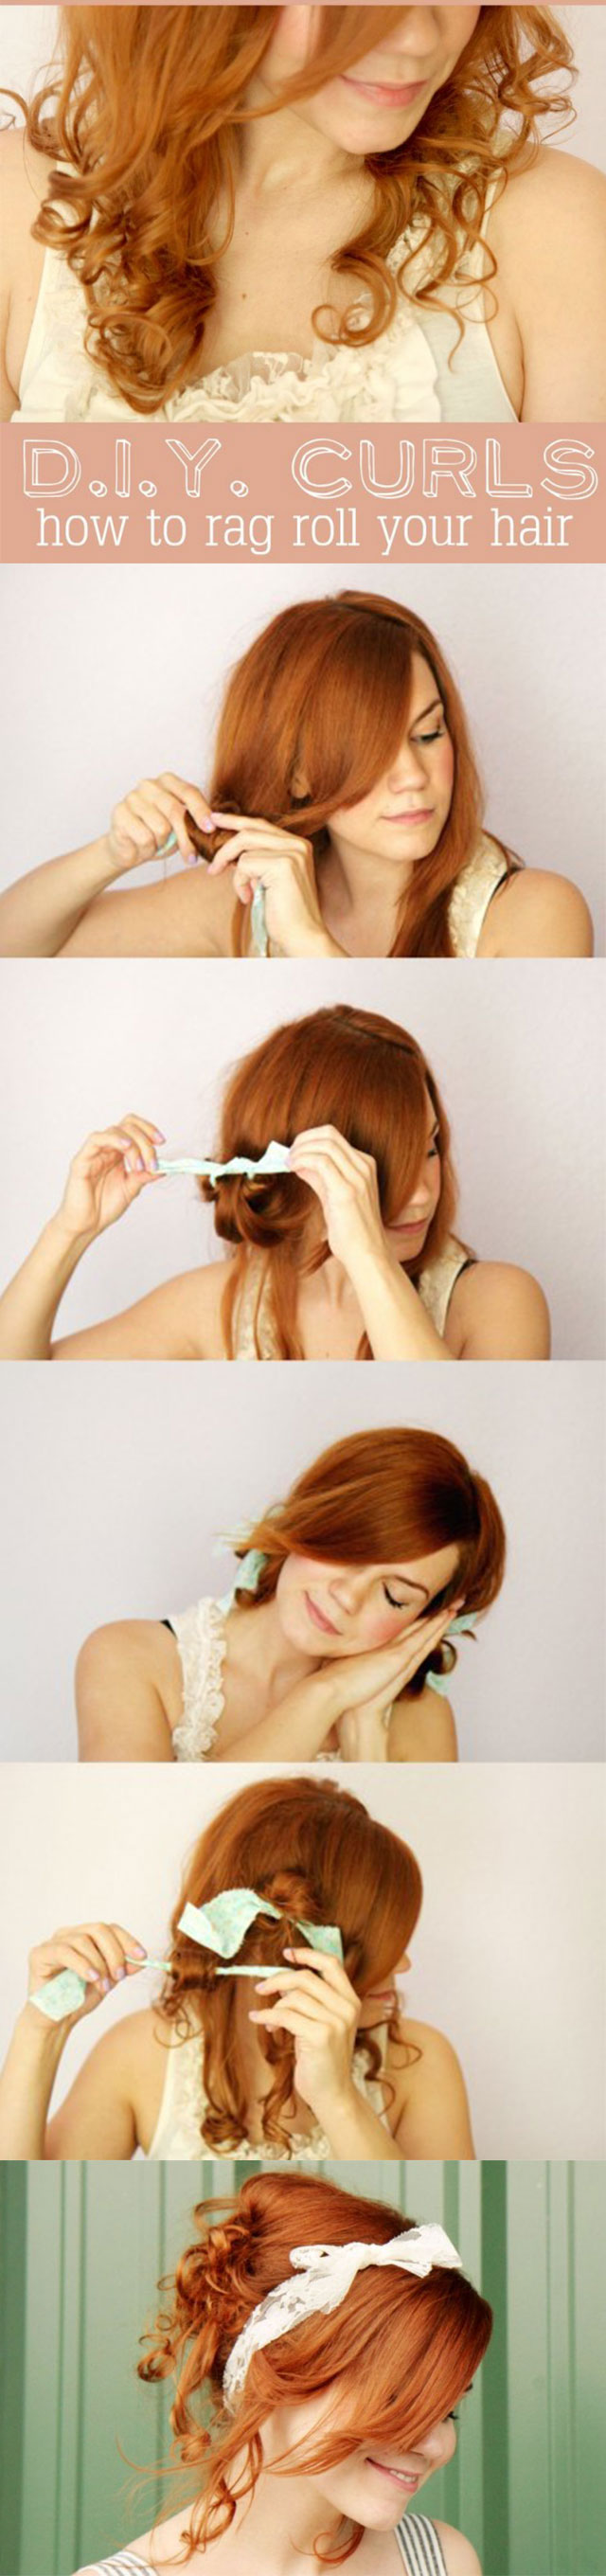 HOW TO ROLL THE HAIR